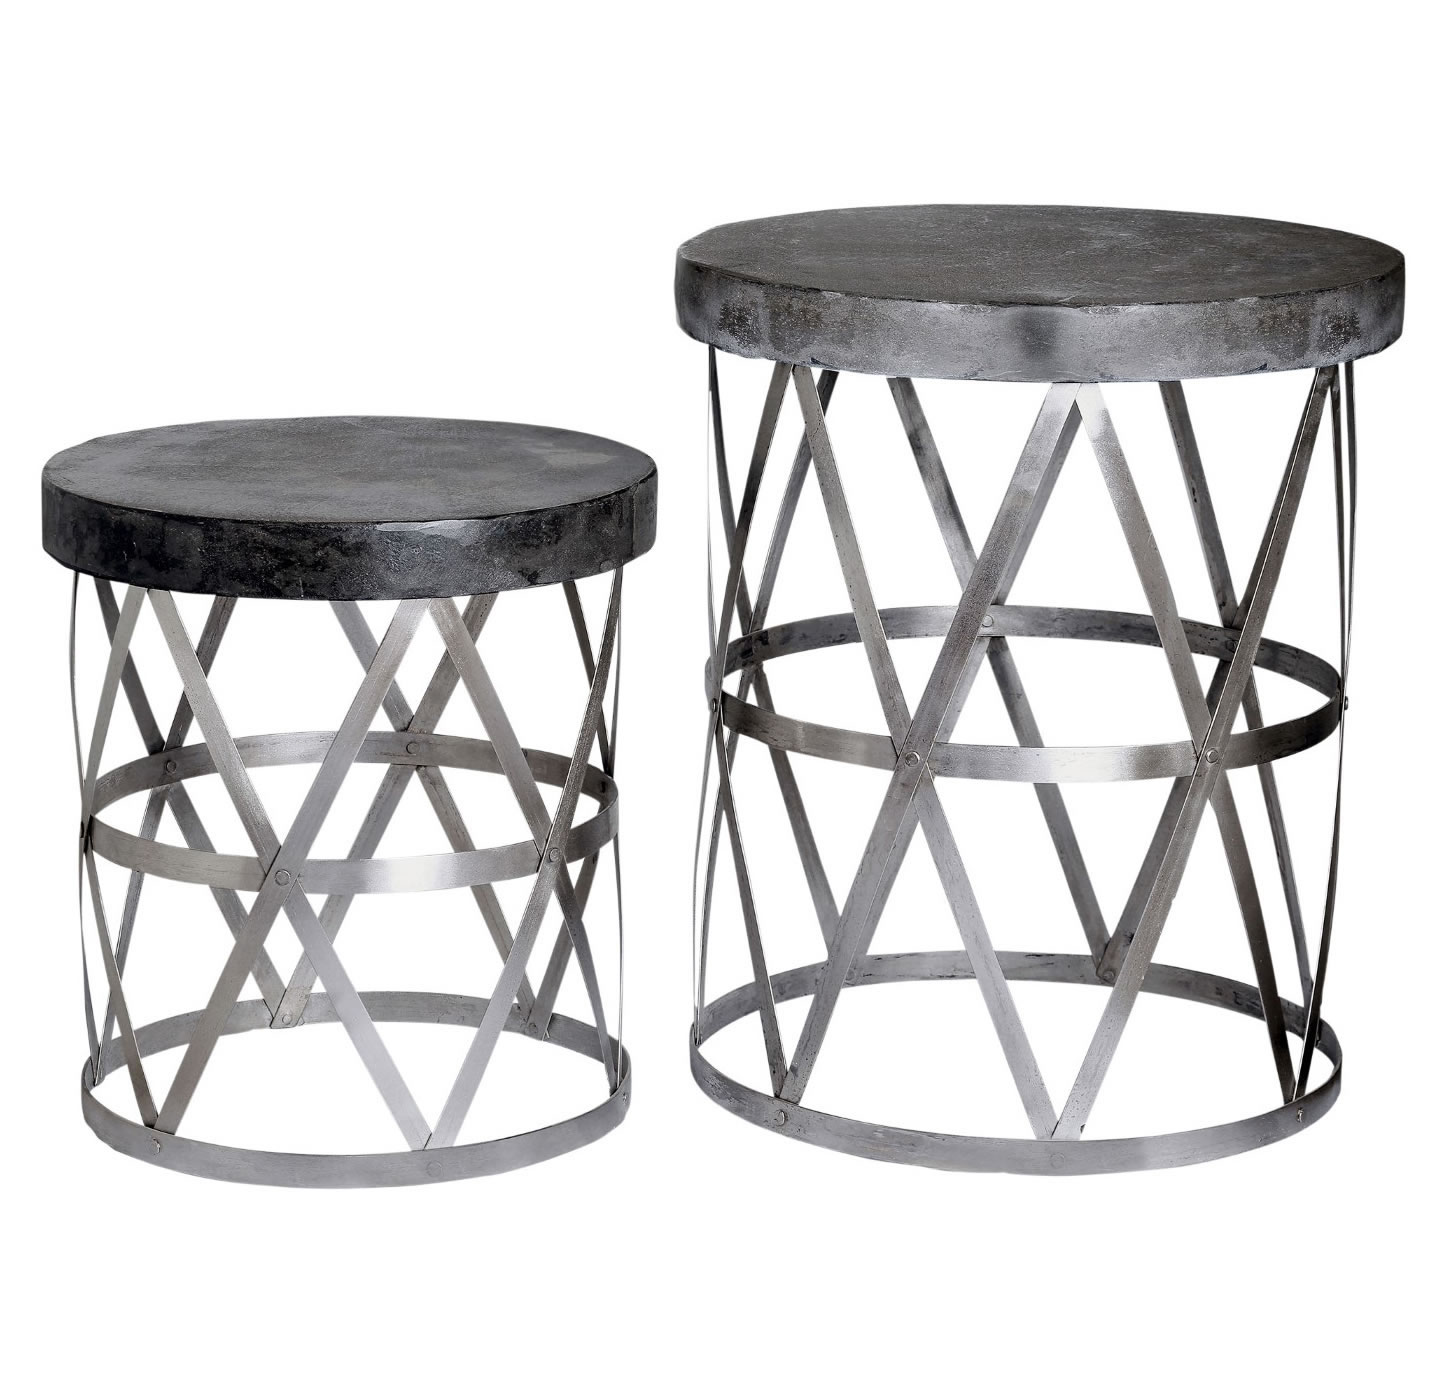 target furniture gold lots table storage threshold and metal clearance cabinet bench ott kijiji corranade tables big white accent round outdoor black full size light united